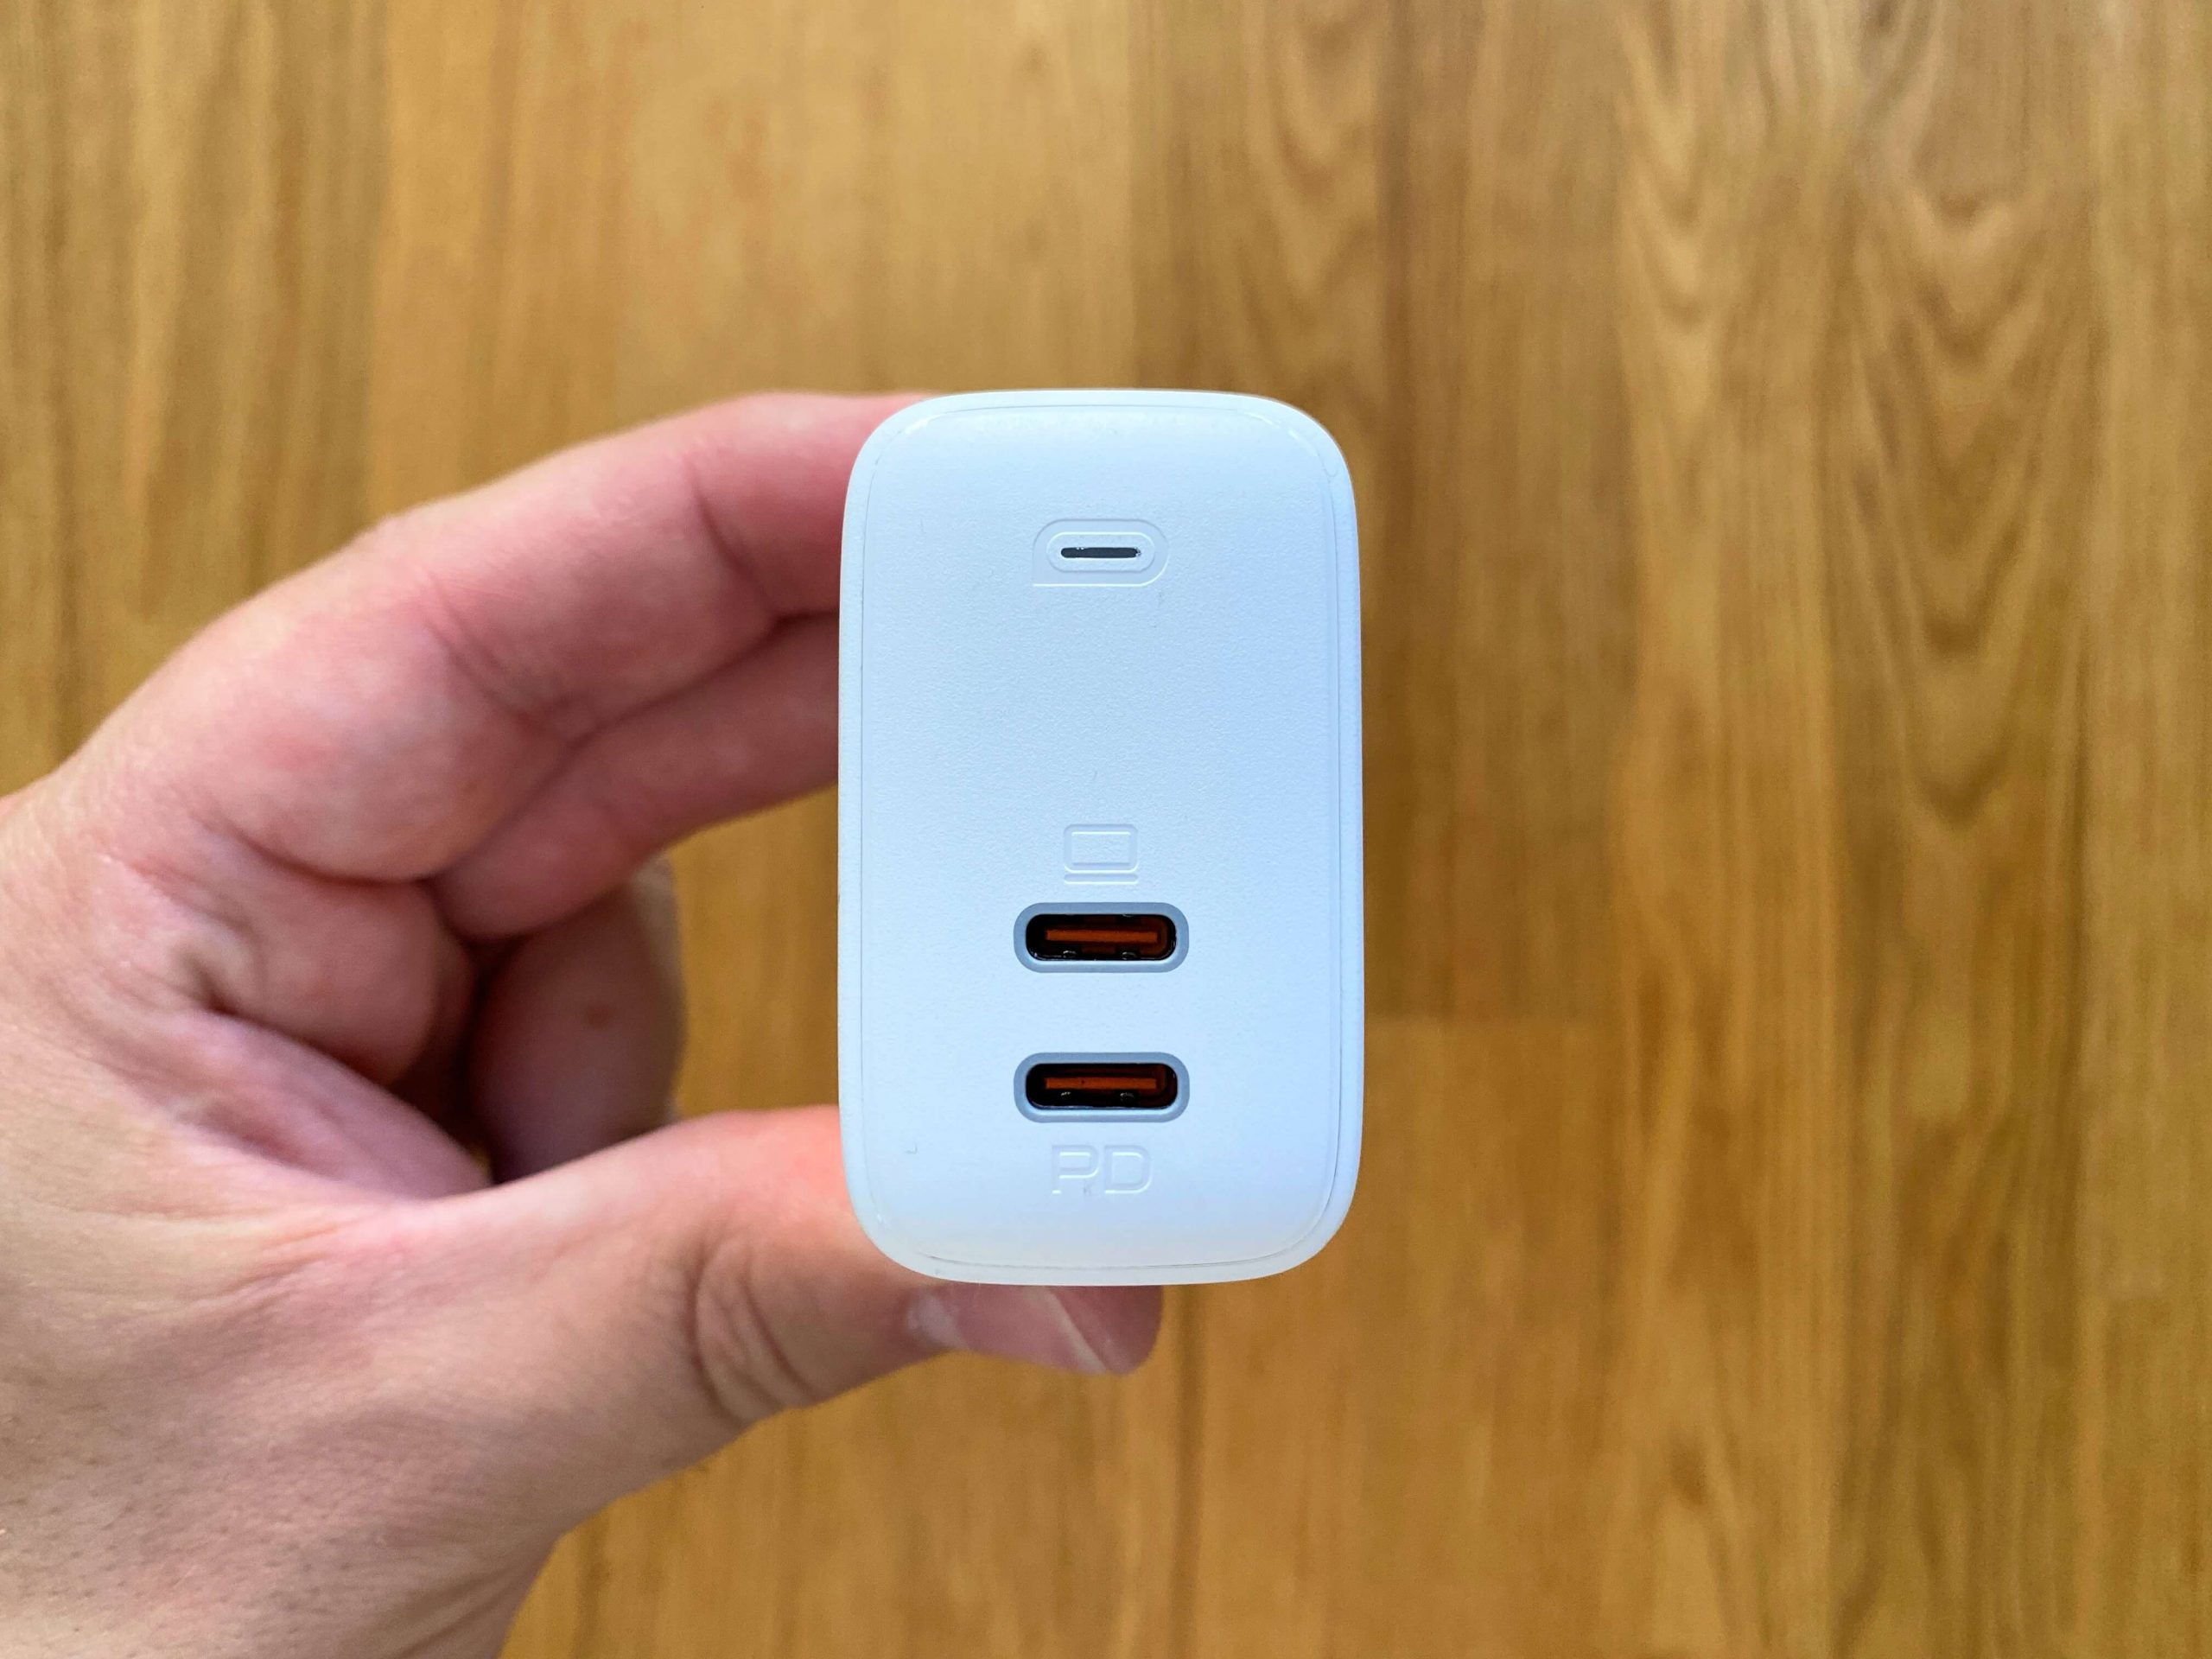 65-Watt-Ladestecker-von-Aukey-Power-Delivery-via-USB-C-im-kleinsten-Handformat5-scaled 65 Watt Ladestecker von Aukey - Power Delivery via USB-C im Handformat